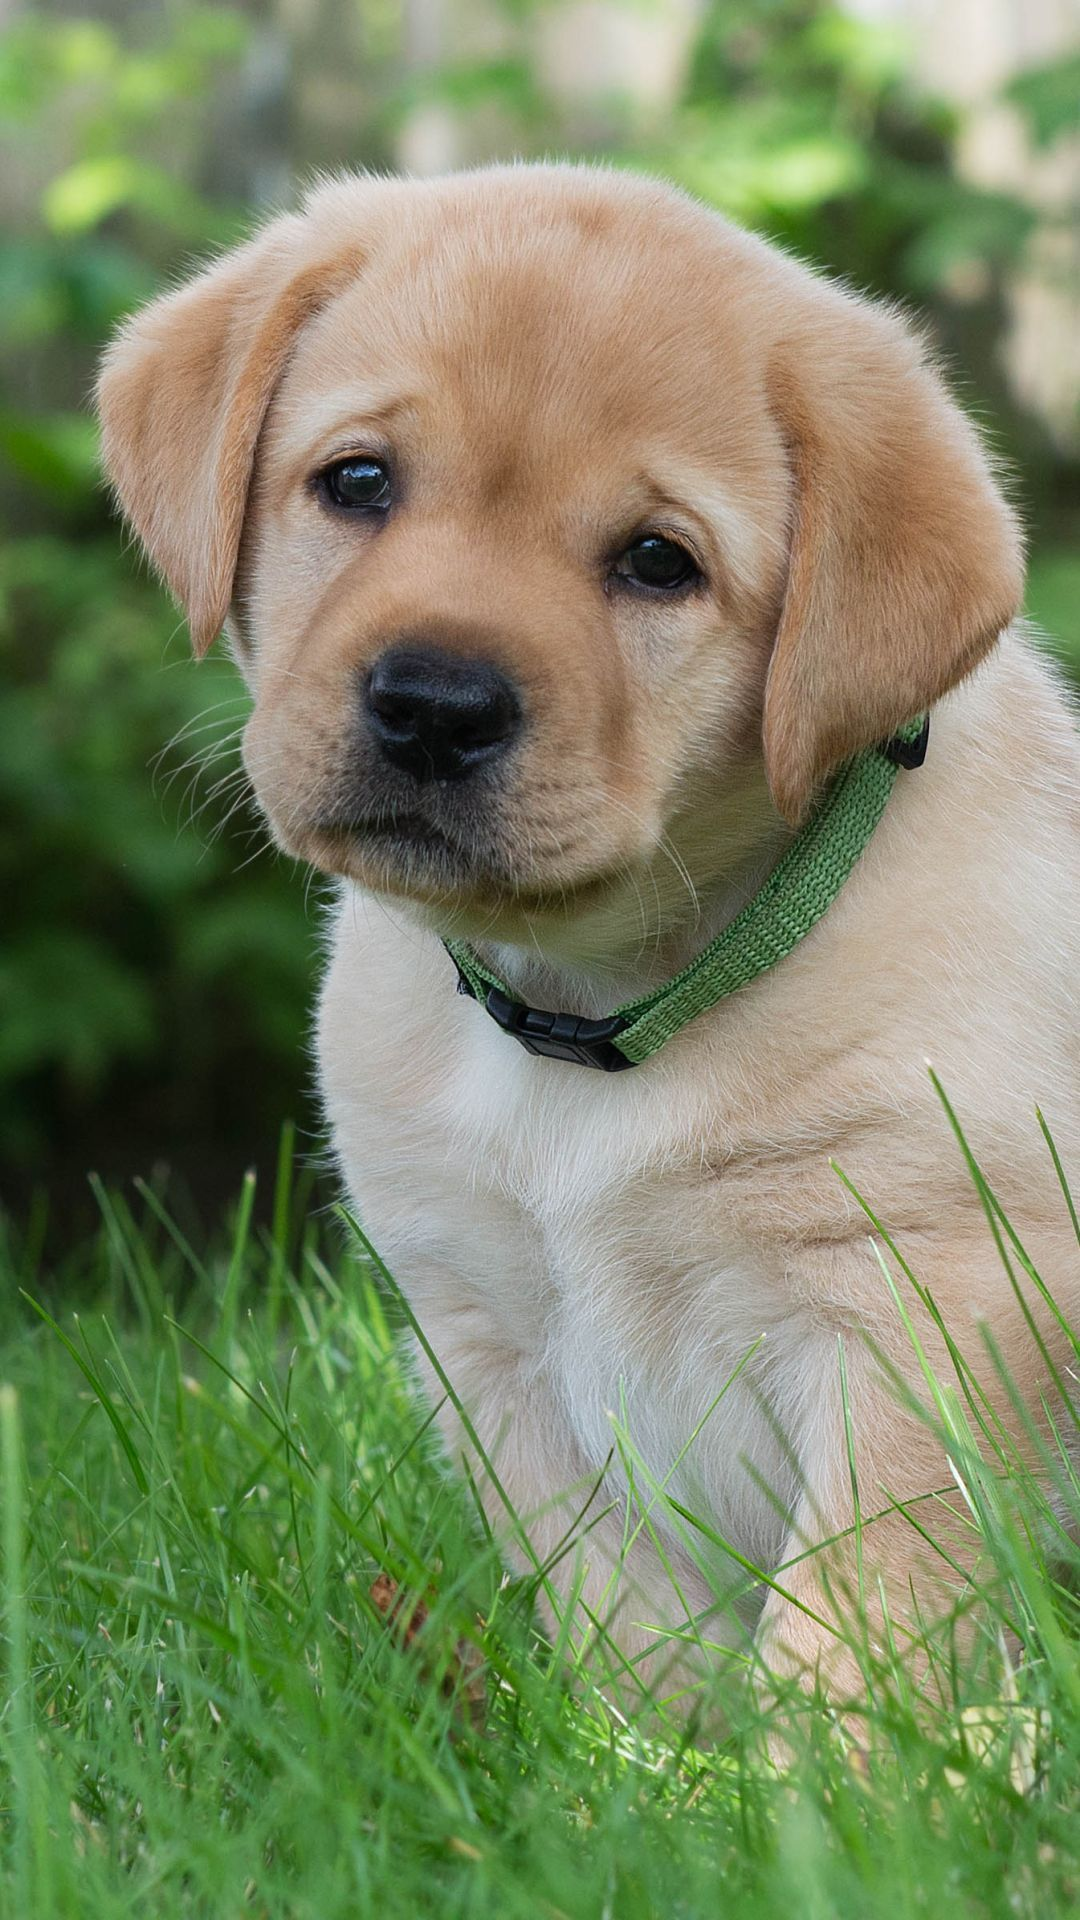 Baby Dog Wallpaper Mobile Cute Baby Dogs Cute Labrador Puppies Baby Dogs